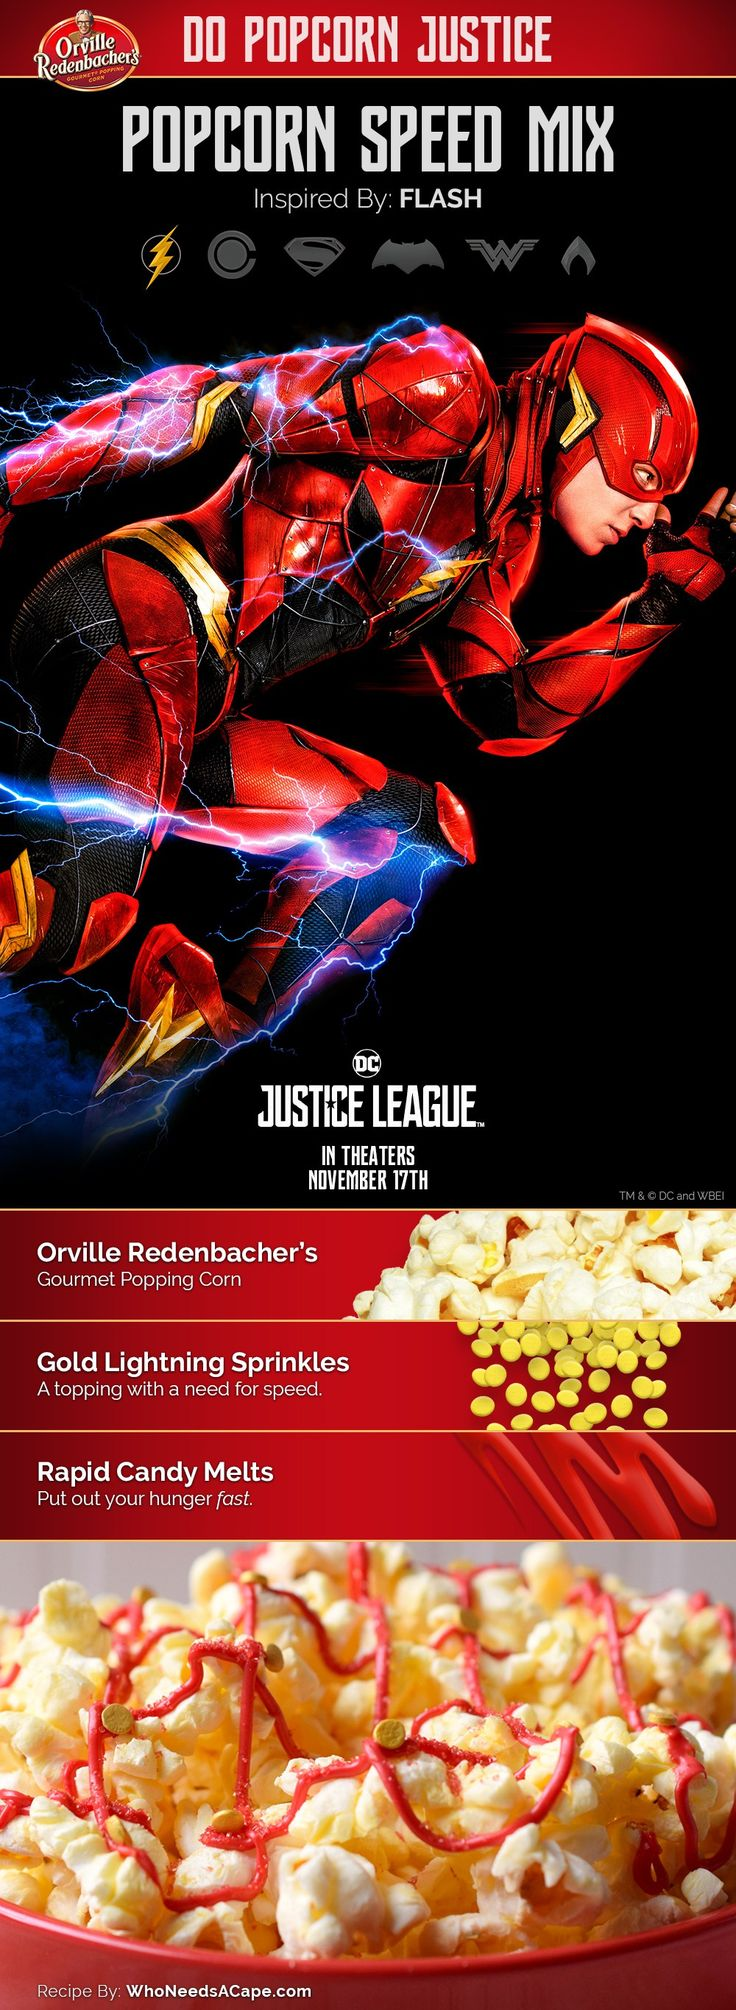 Popcorn Speed Mix: inspired by Flash #orvillepopcornjusticesweepstakes